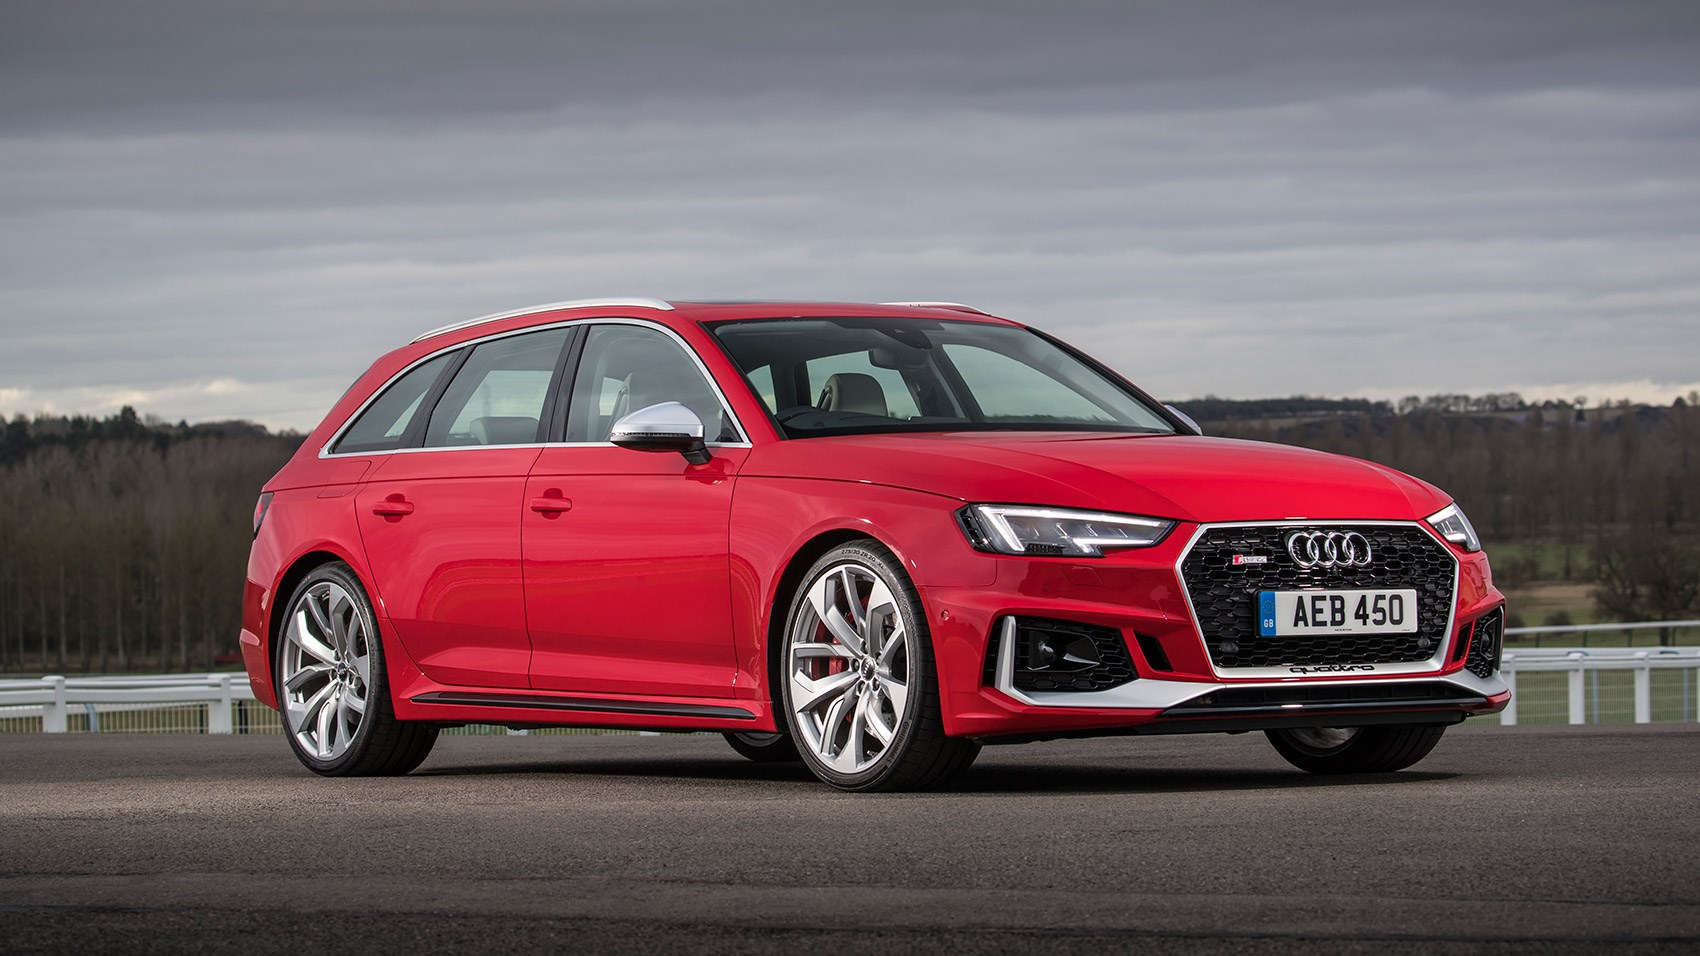 New Audi Rs4 Avant 2018 Review Rs5 Thrills With Added